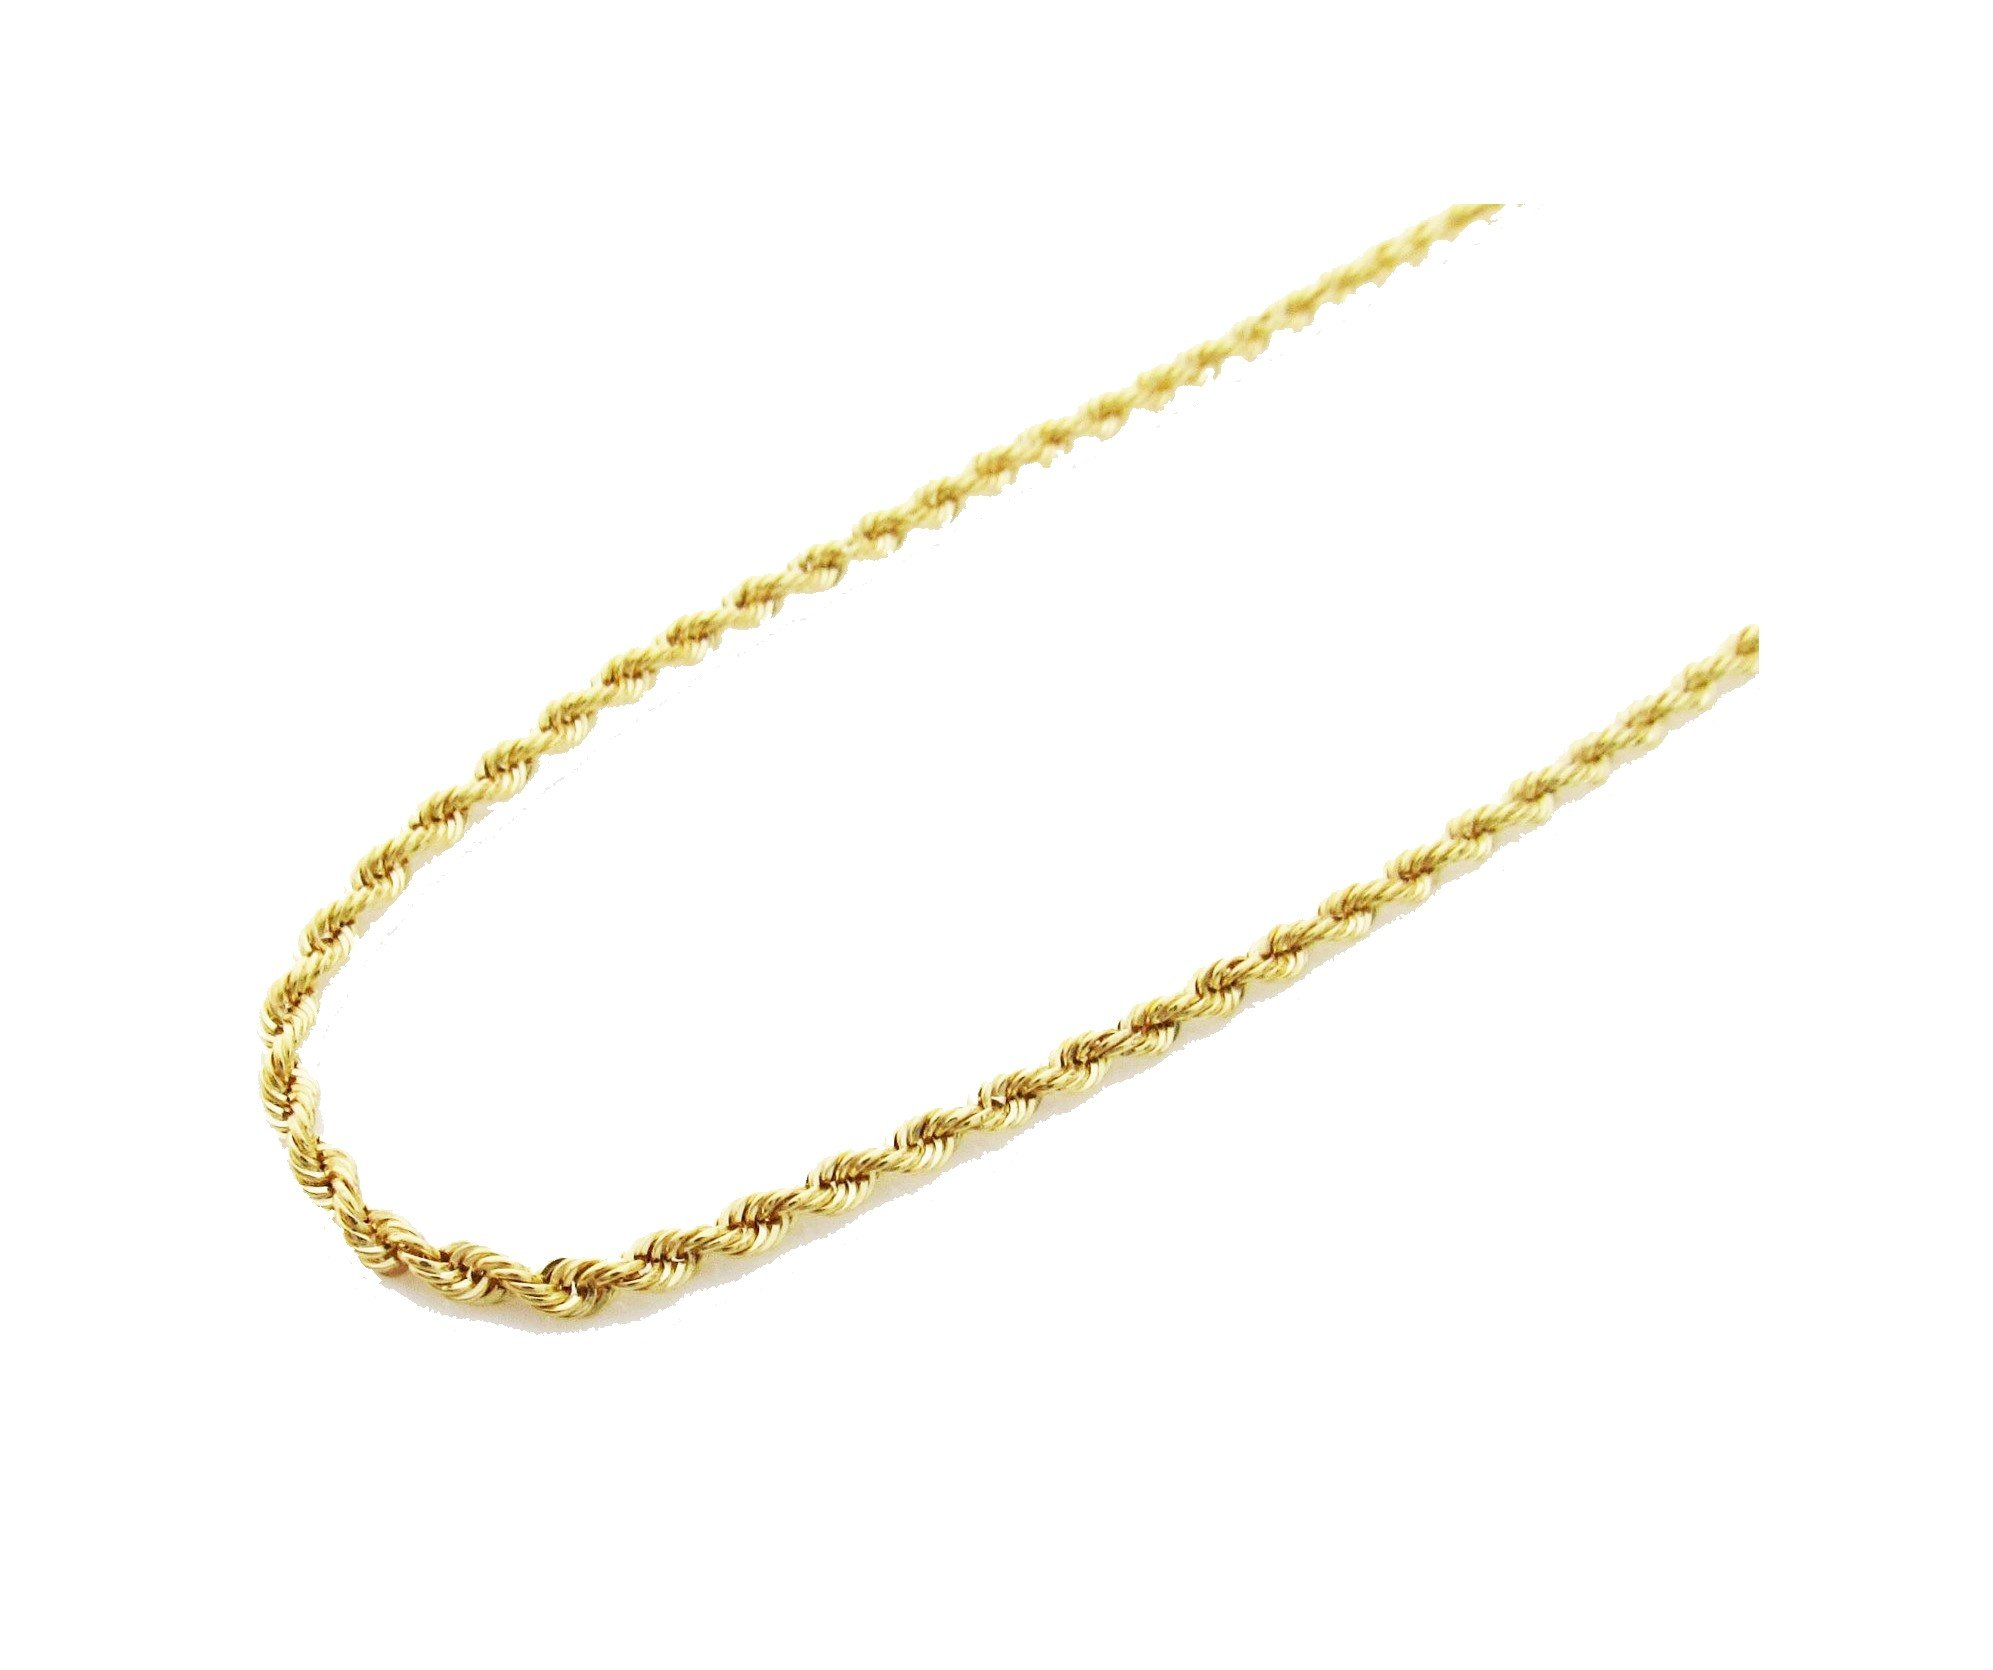 14K Gold Italy Yellow Rope Chain 24'' 2mm wide Hollow